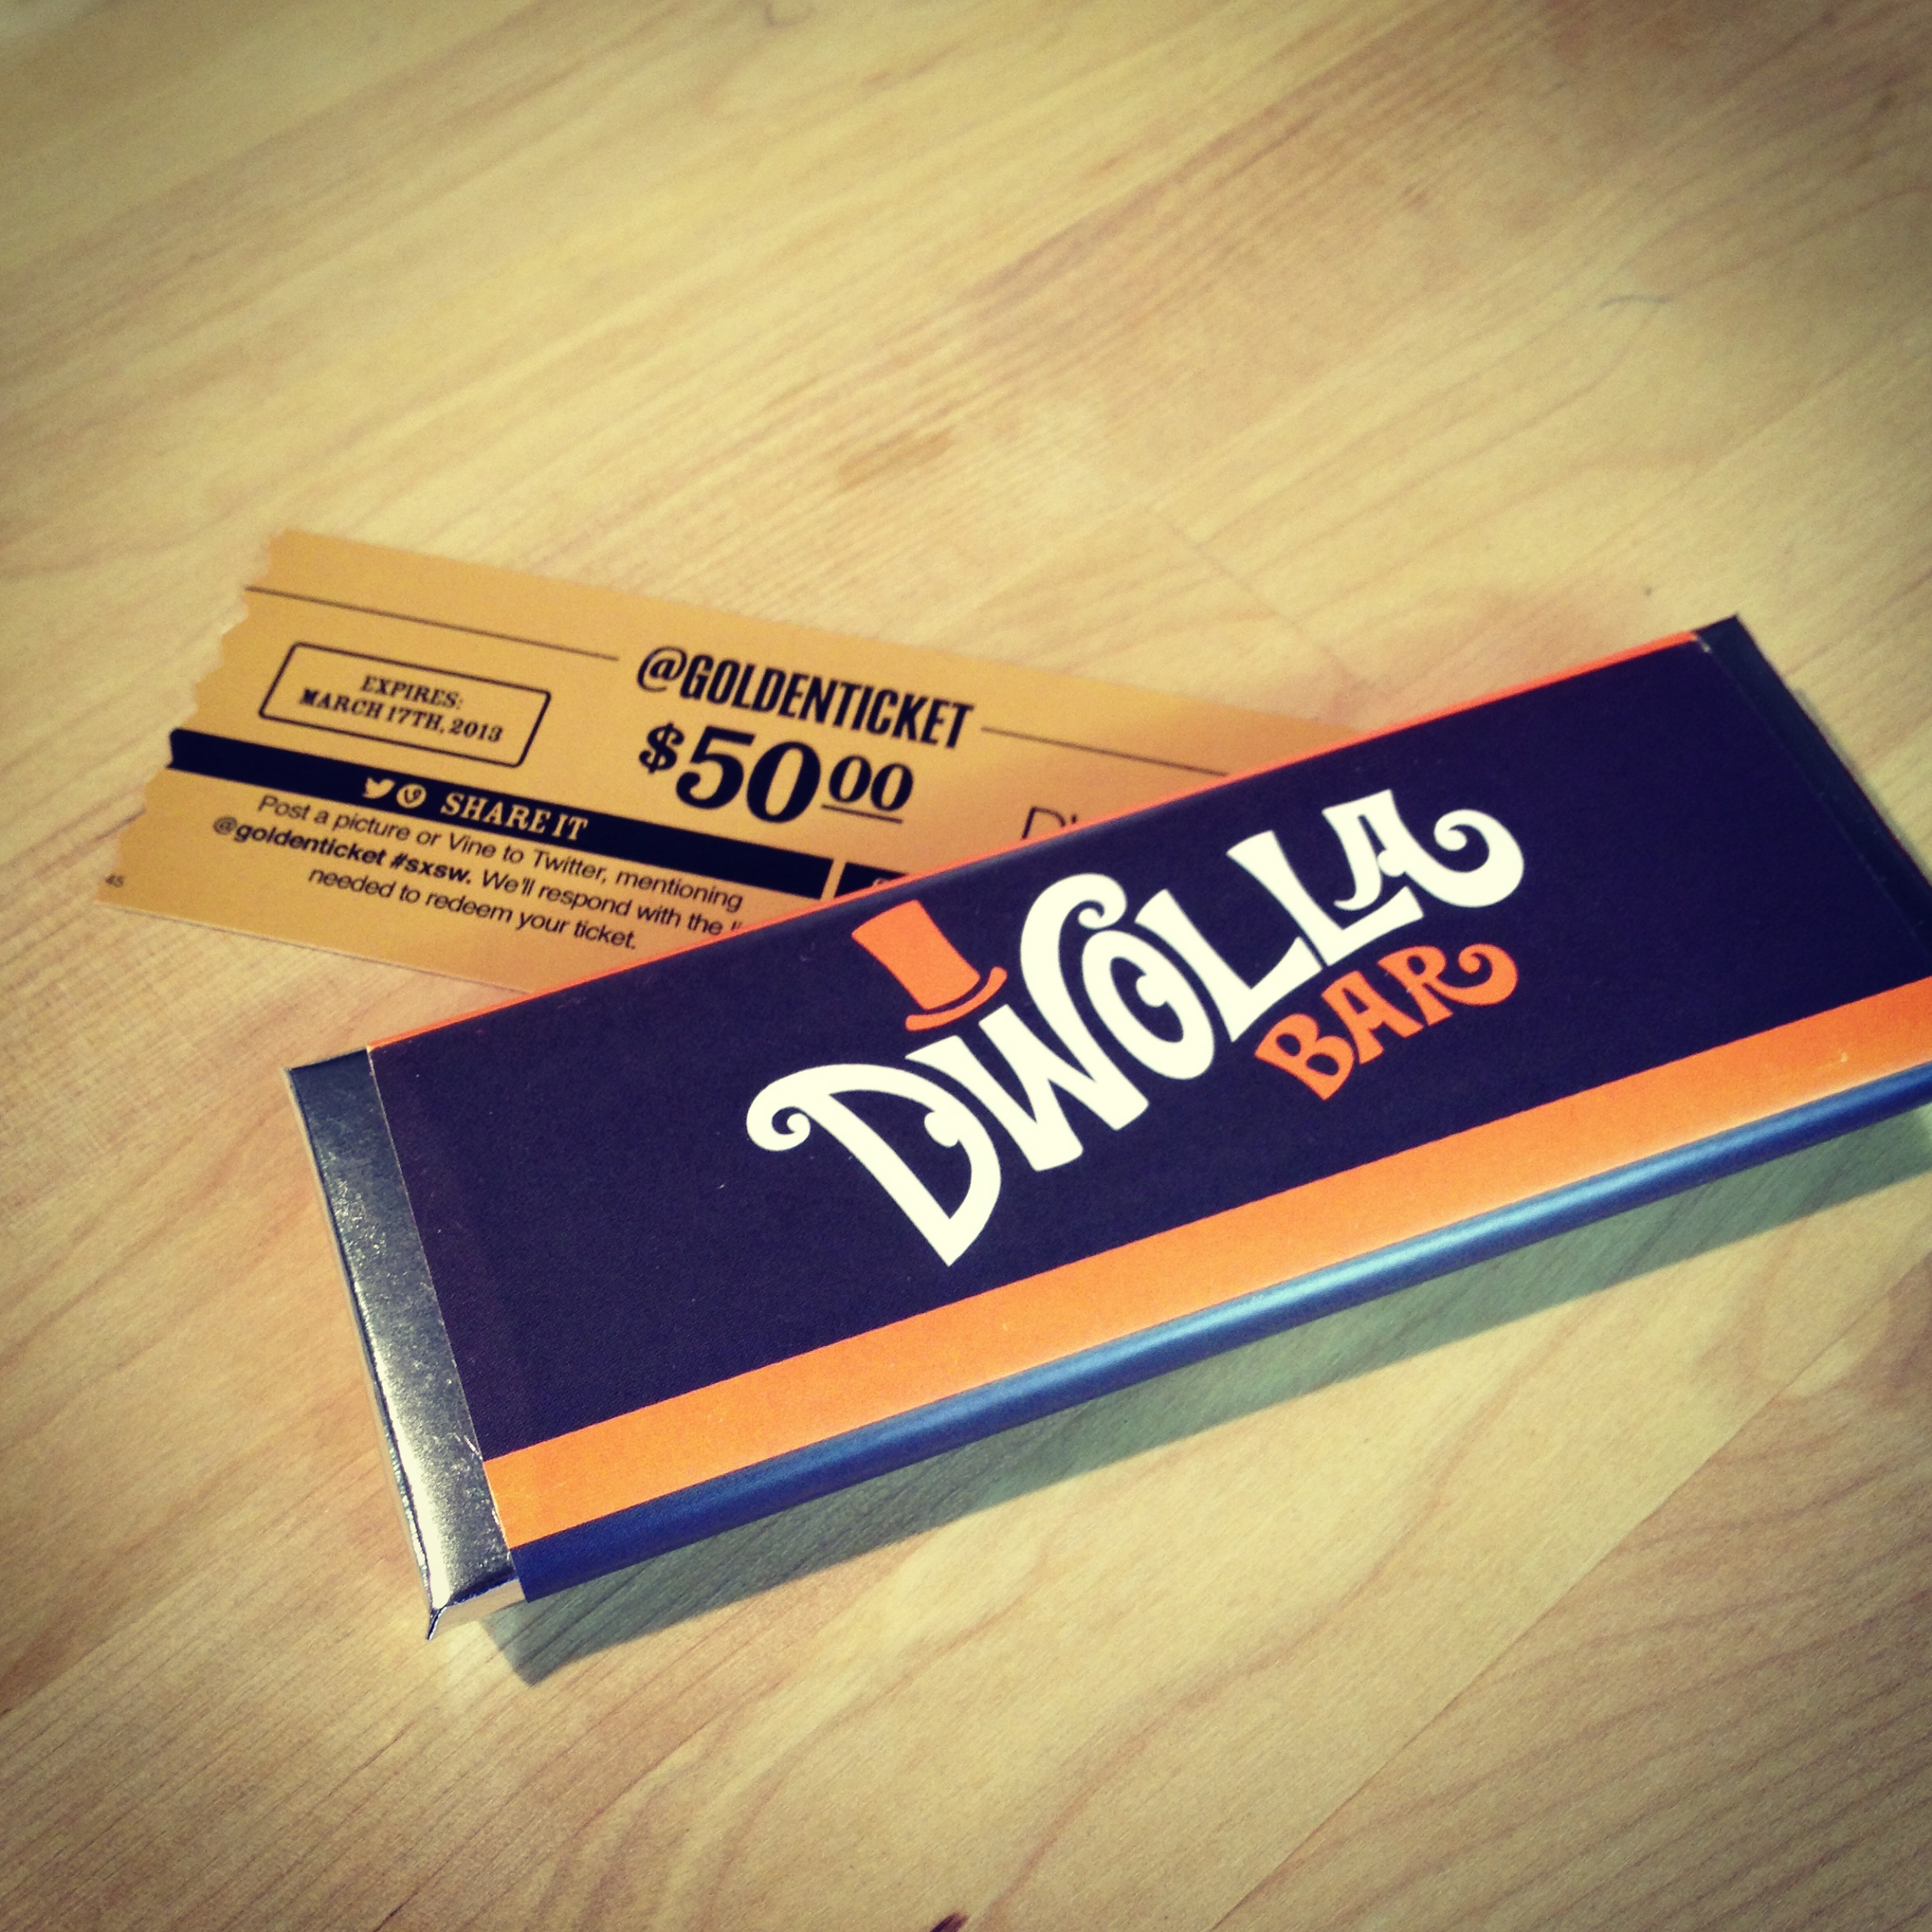 Dwolla-Bar-and-Golden-Ticket